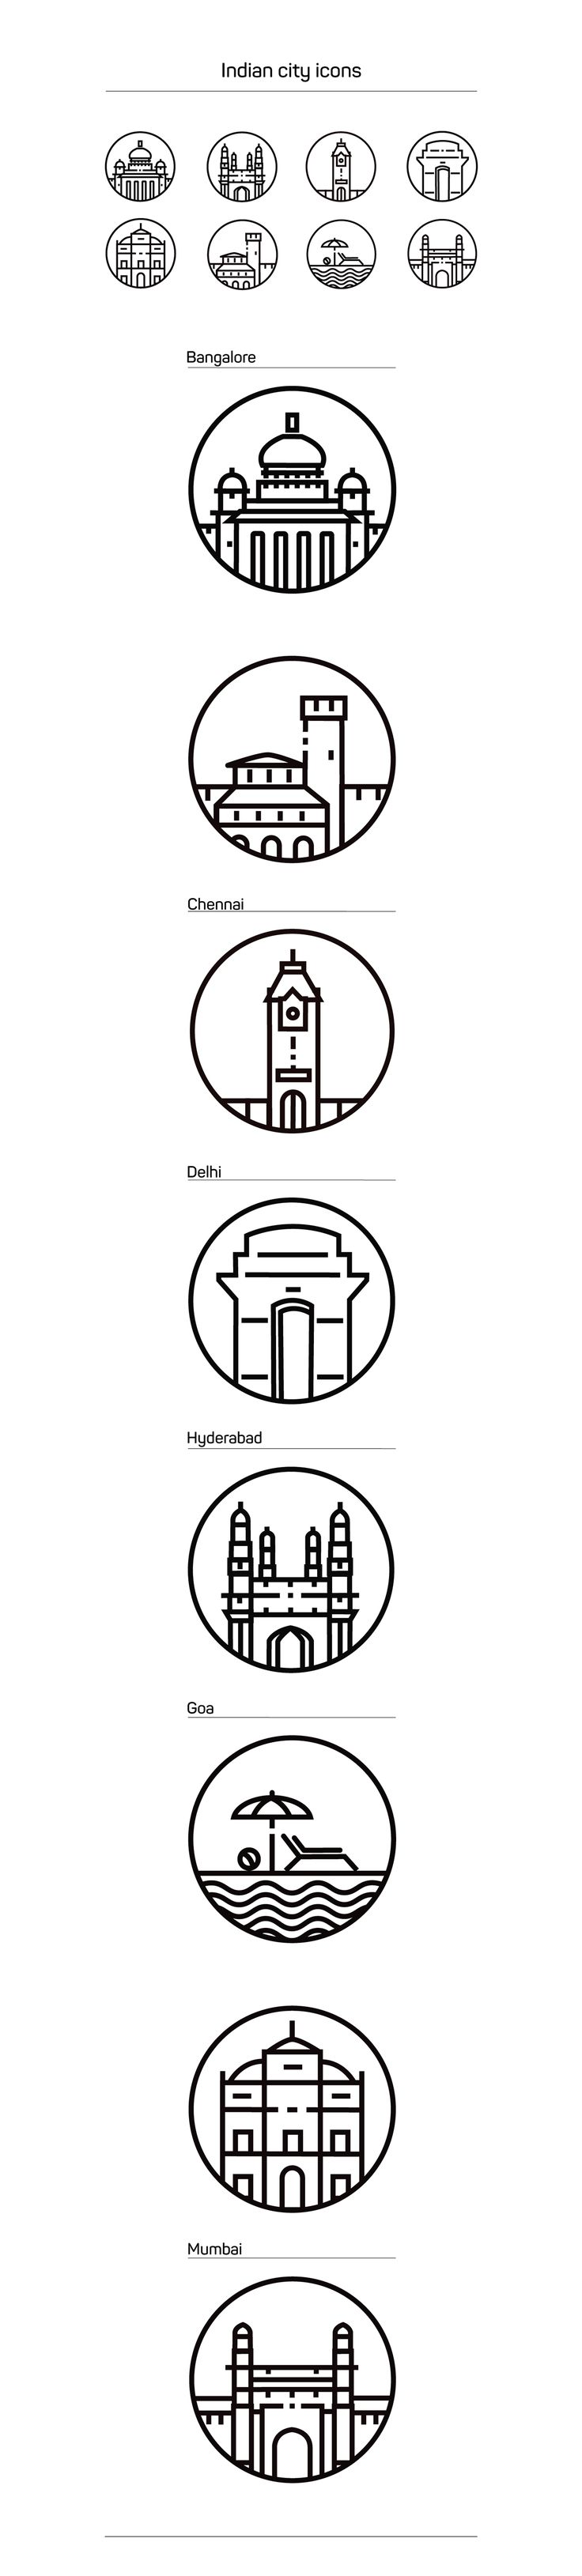 Food infographic - I created these city icons for redBus as